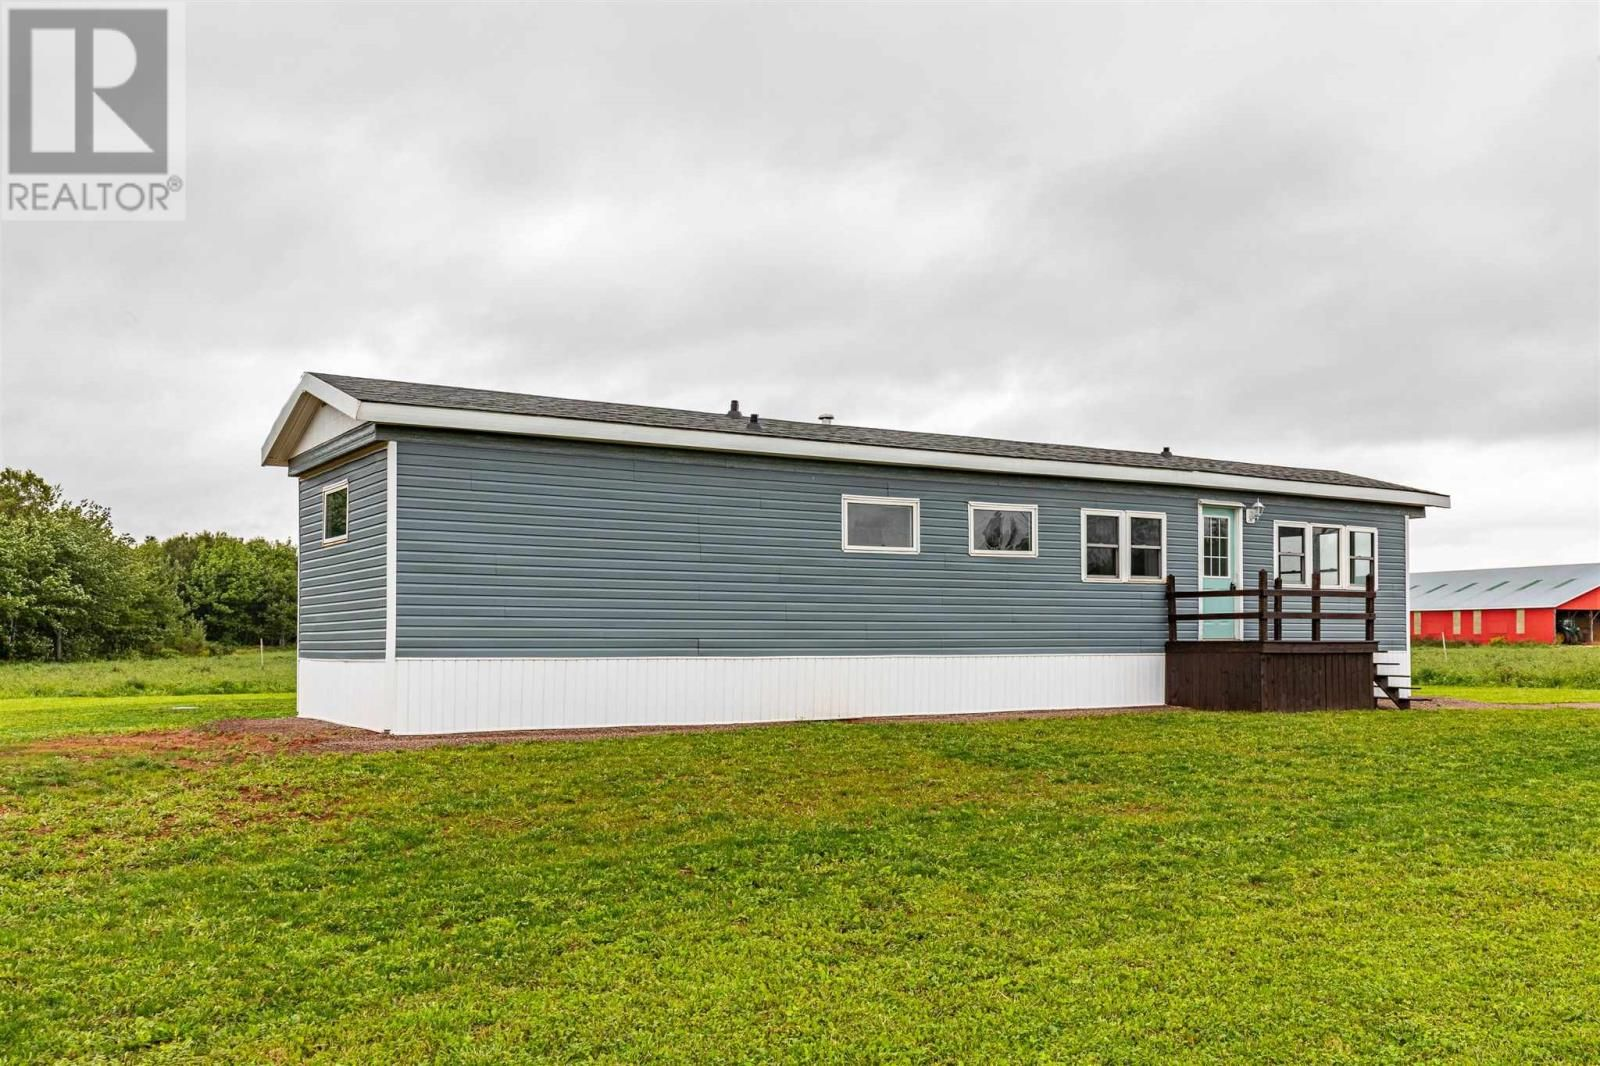 Photo 23: Photos: 4384 Route 11 in St. Nicholas: House for sale : MLS®# 202123302